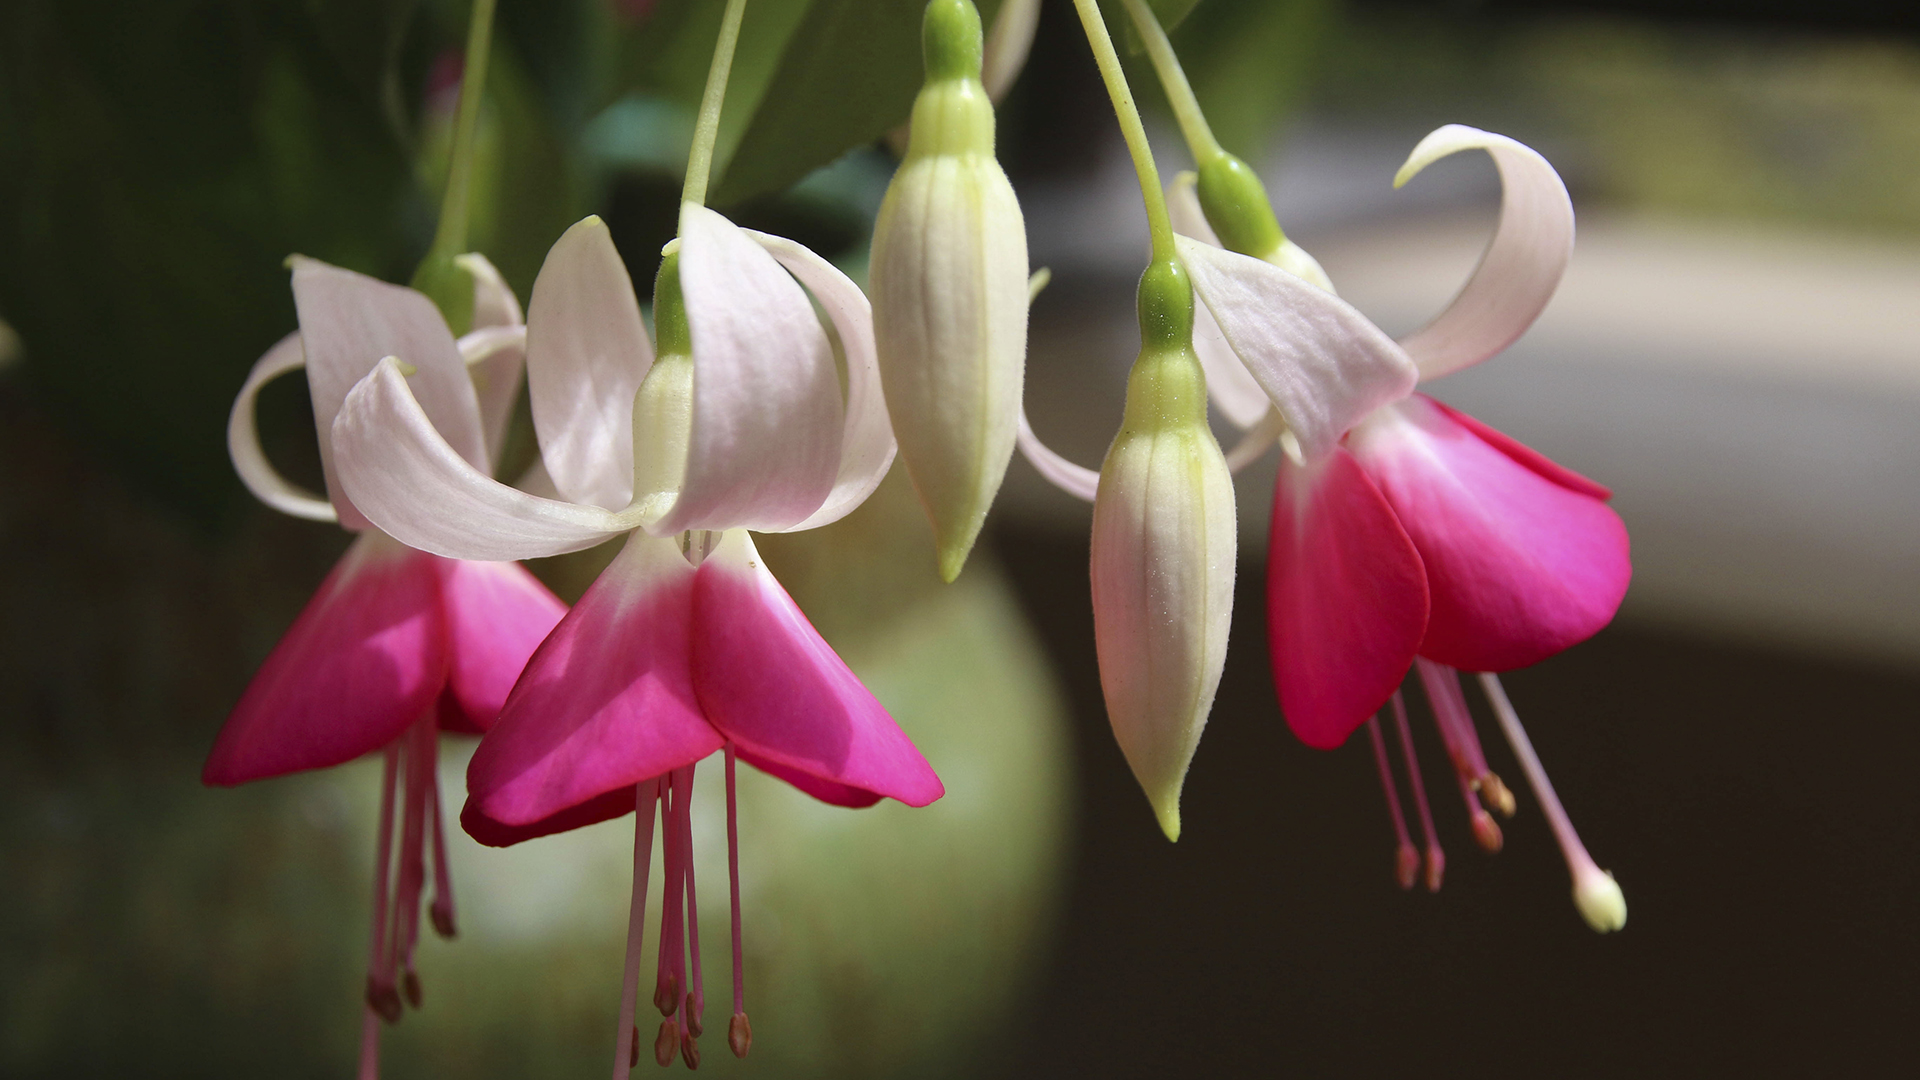 Fuchsia san diego zoo animals plants a group of pink and white fuchsia flowers mightylinksfo